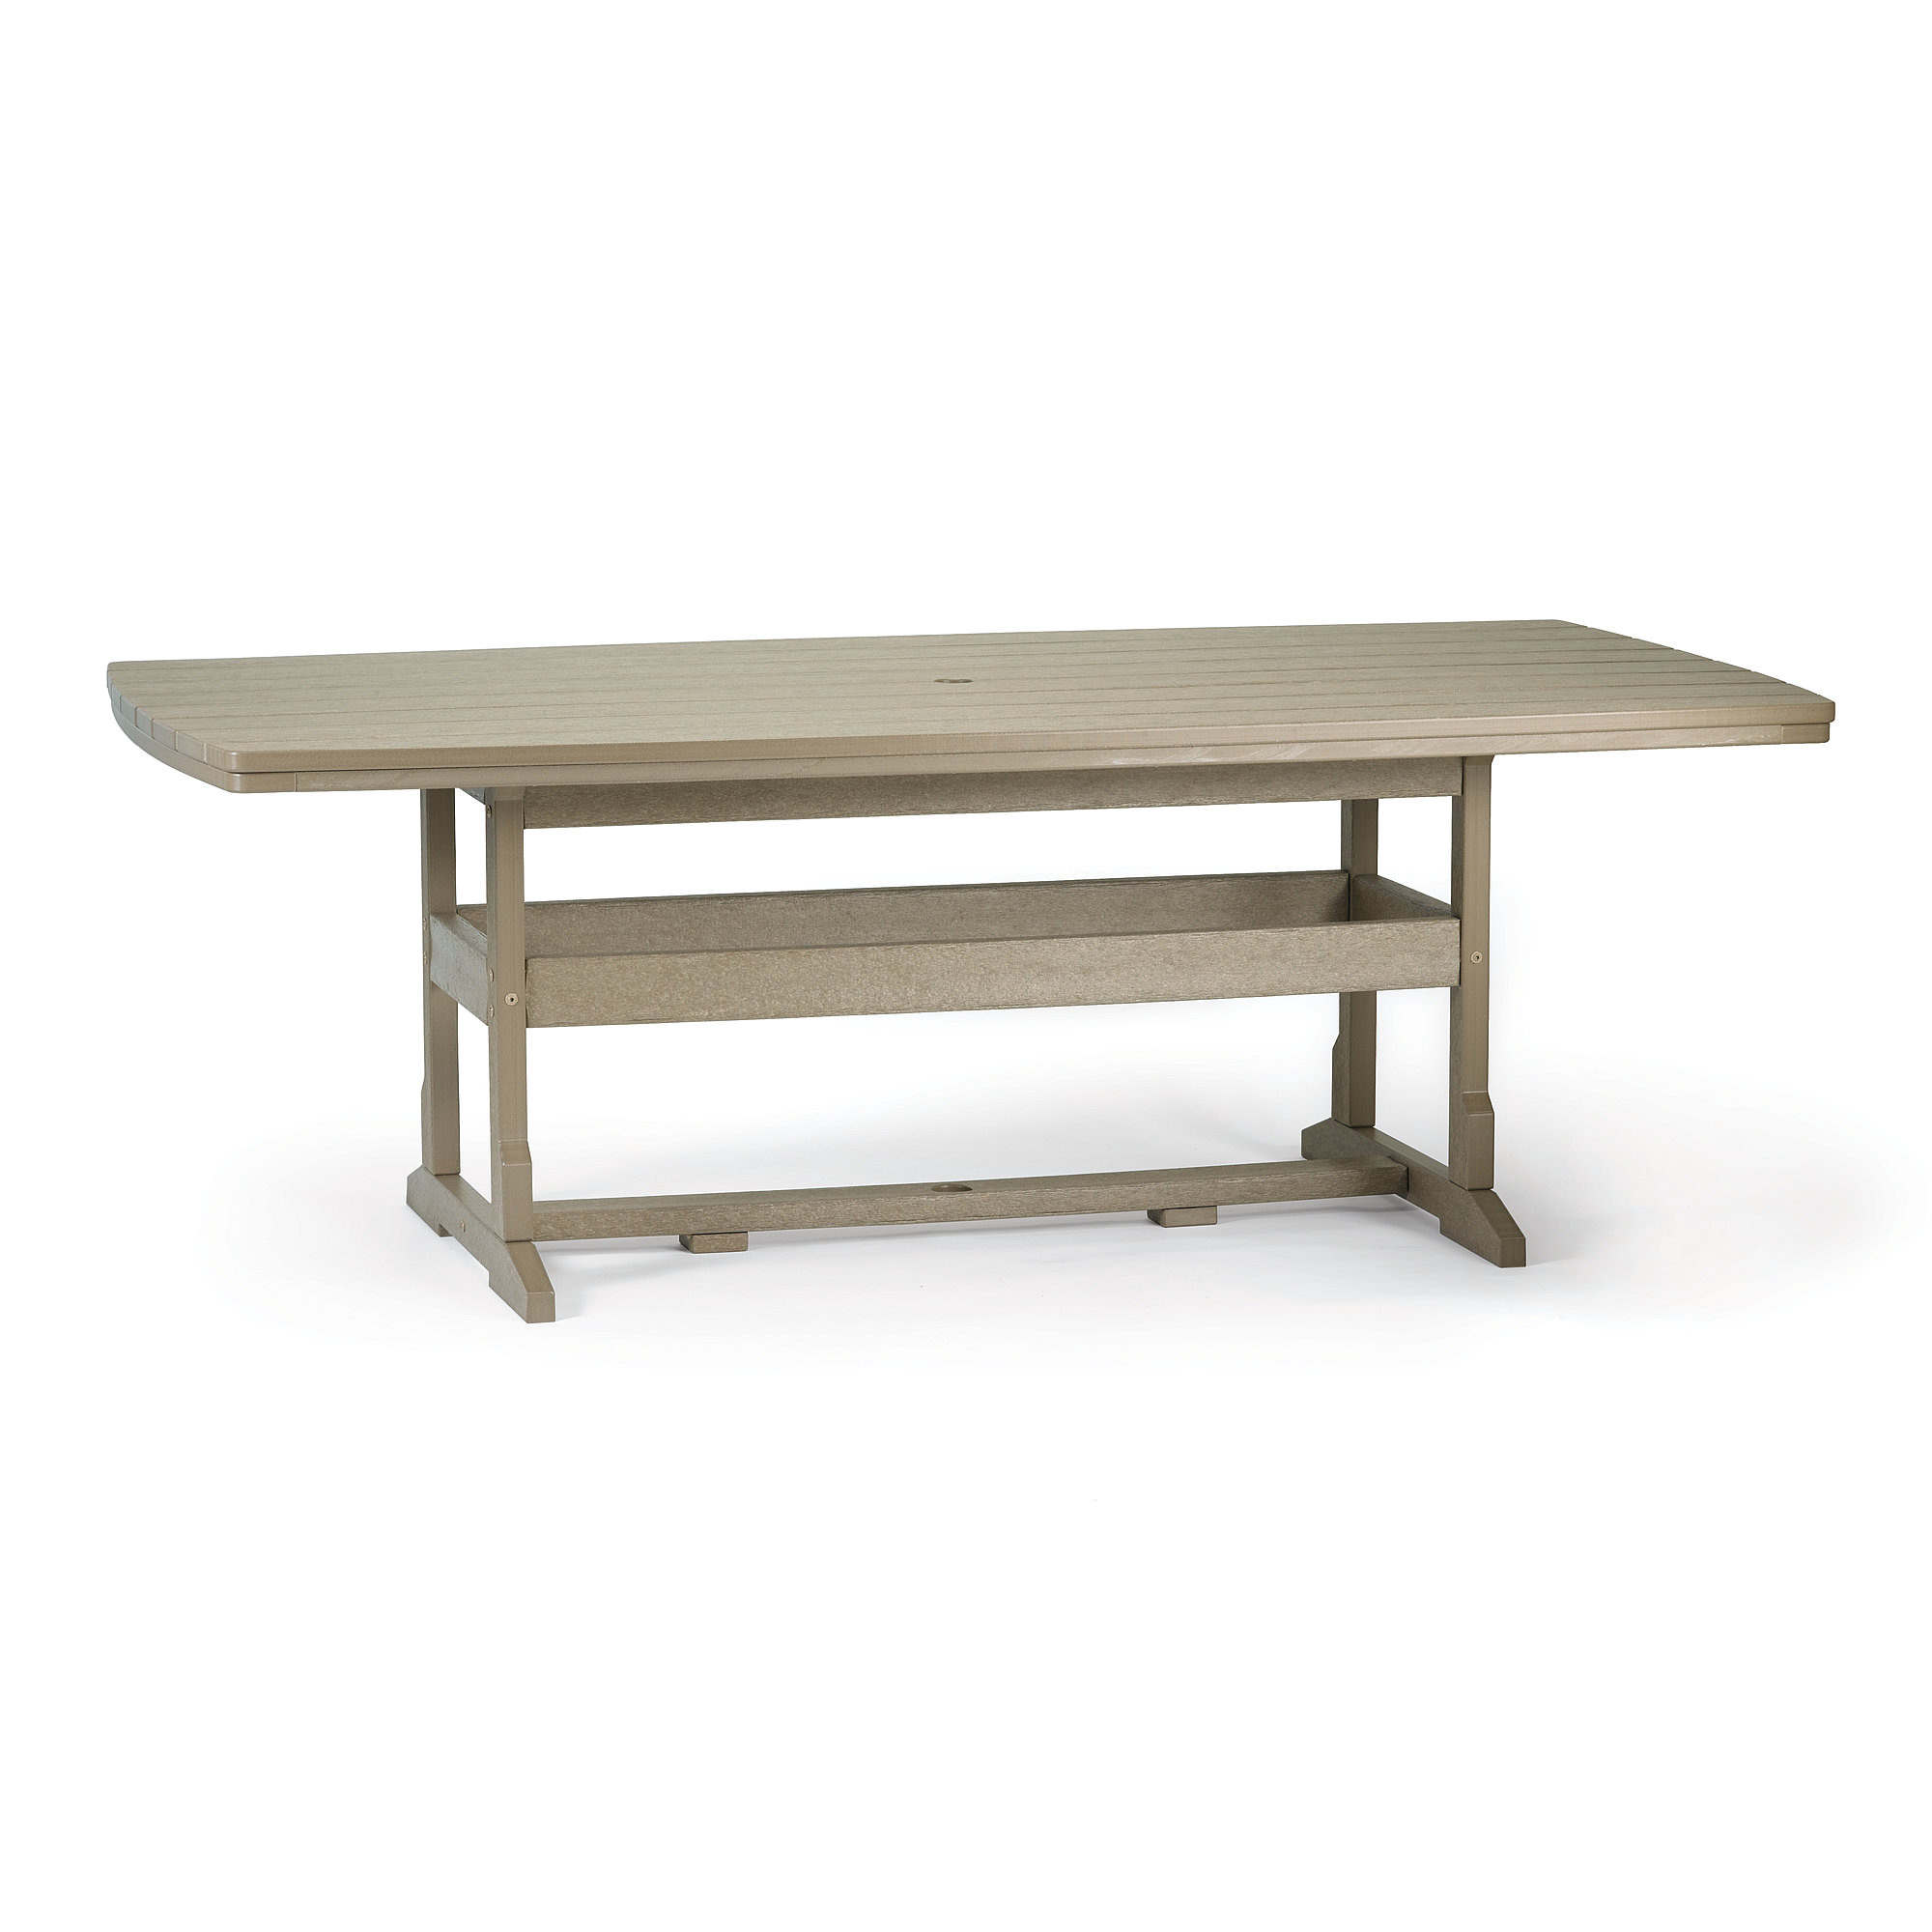 Breezesta 42 X 84 Inch Rectangular Dining Table